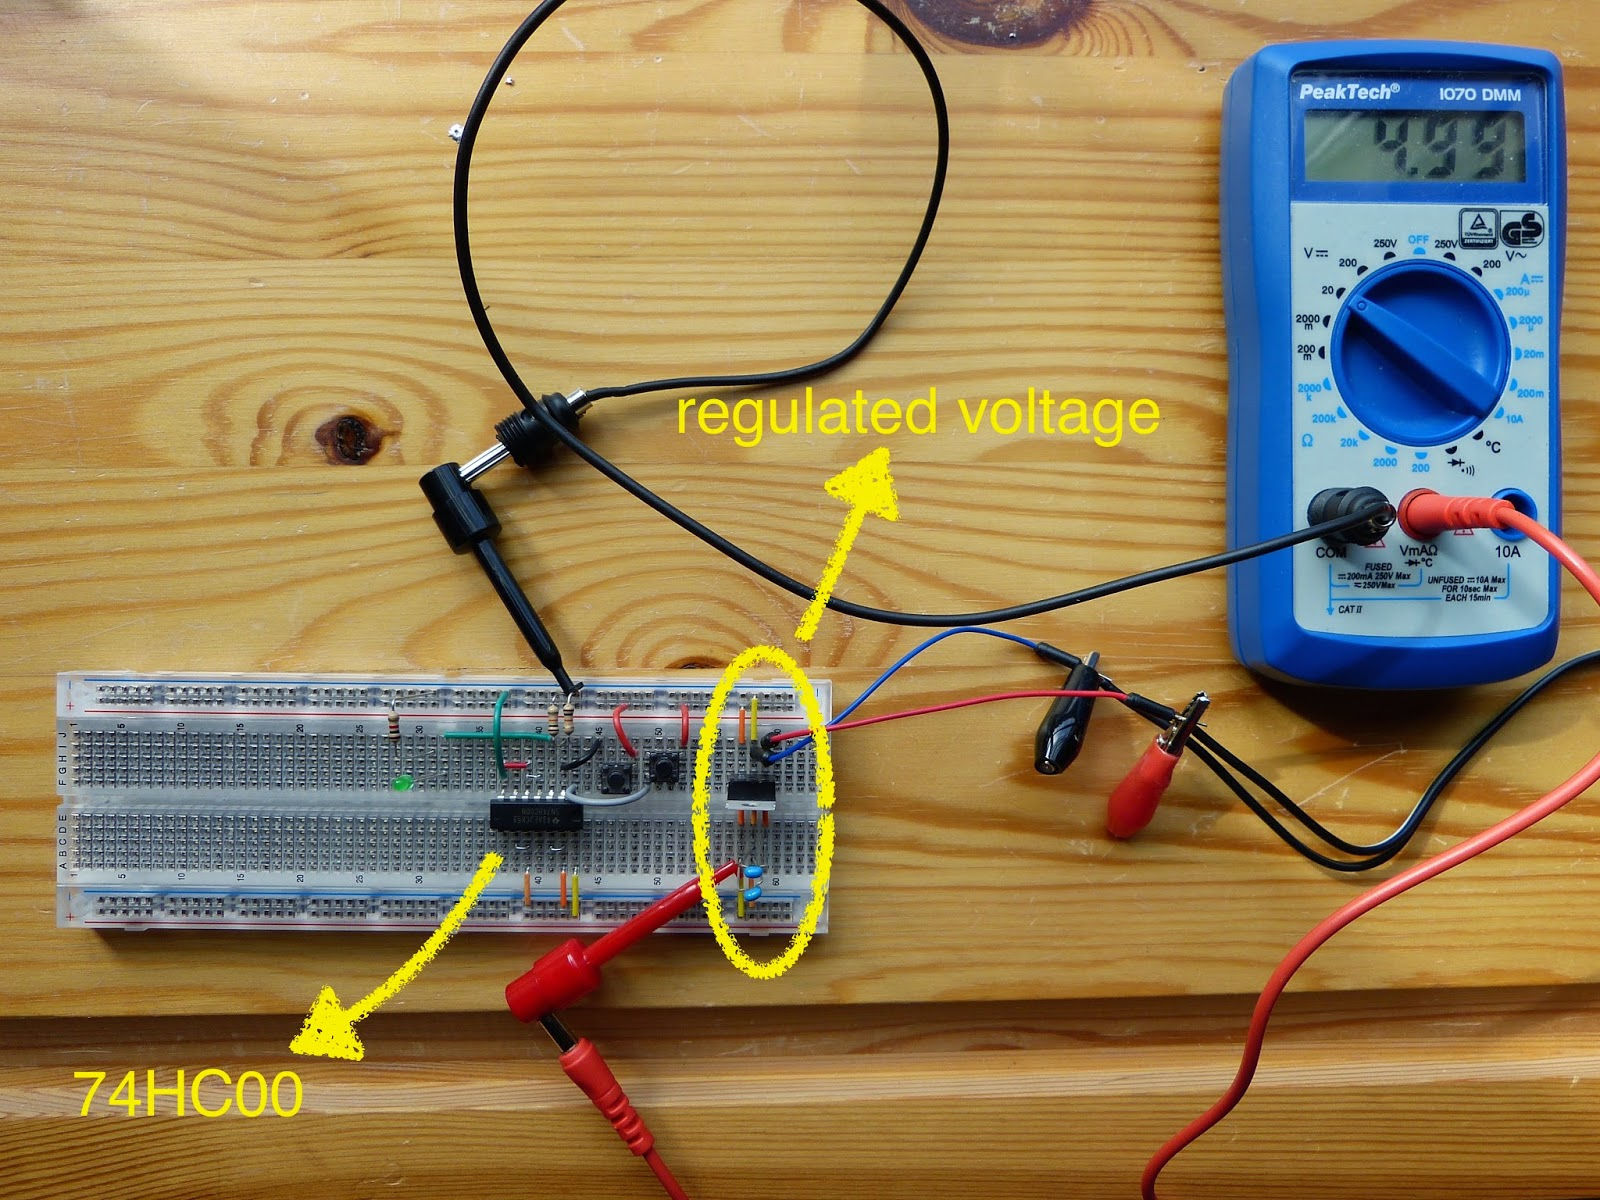 Electronics Page 4 Homehack Learn To Build The Atari Punk Console Electronic Circuits Overview Of Experiment 19 With Lm7805 On Right